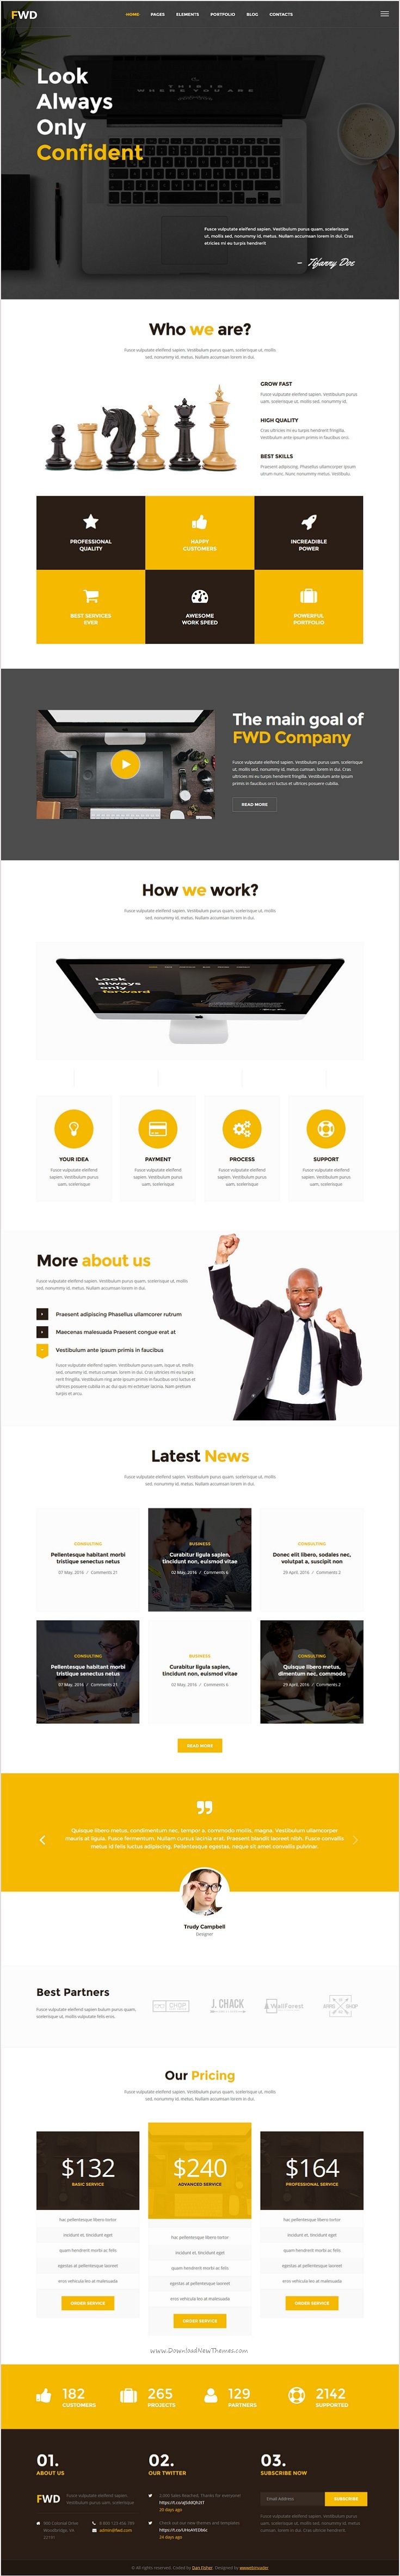 Forward is a clean & responsive #HTML template suitable for #webdesign your #corporate business, agency or a portfolio website download now➩ https://themeforest.net/item/forward-business-corporate-html-template/18510975?ref=Datasata